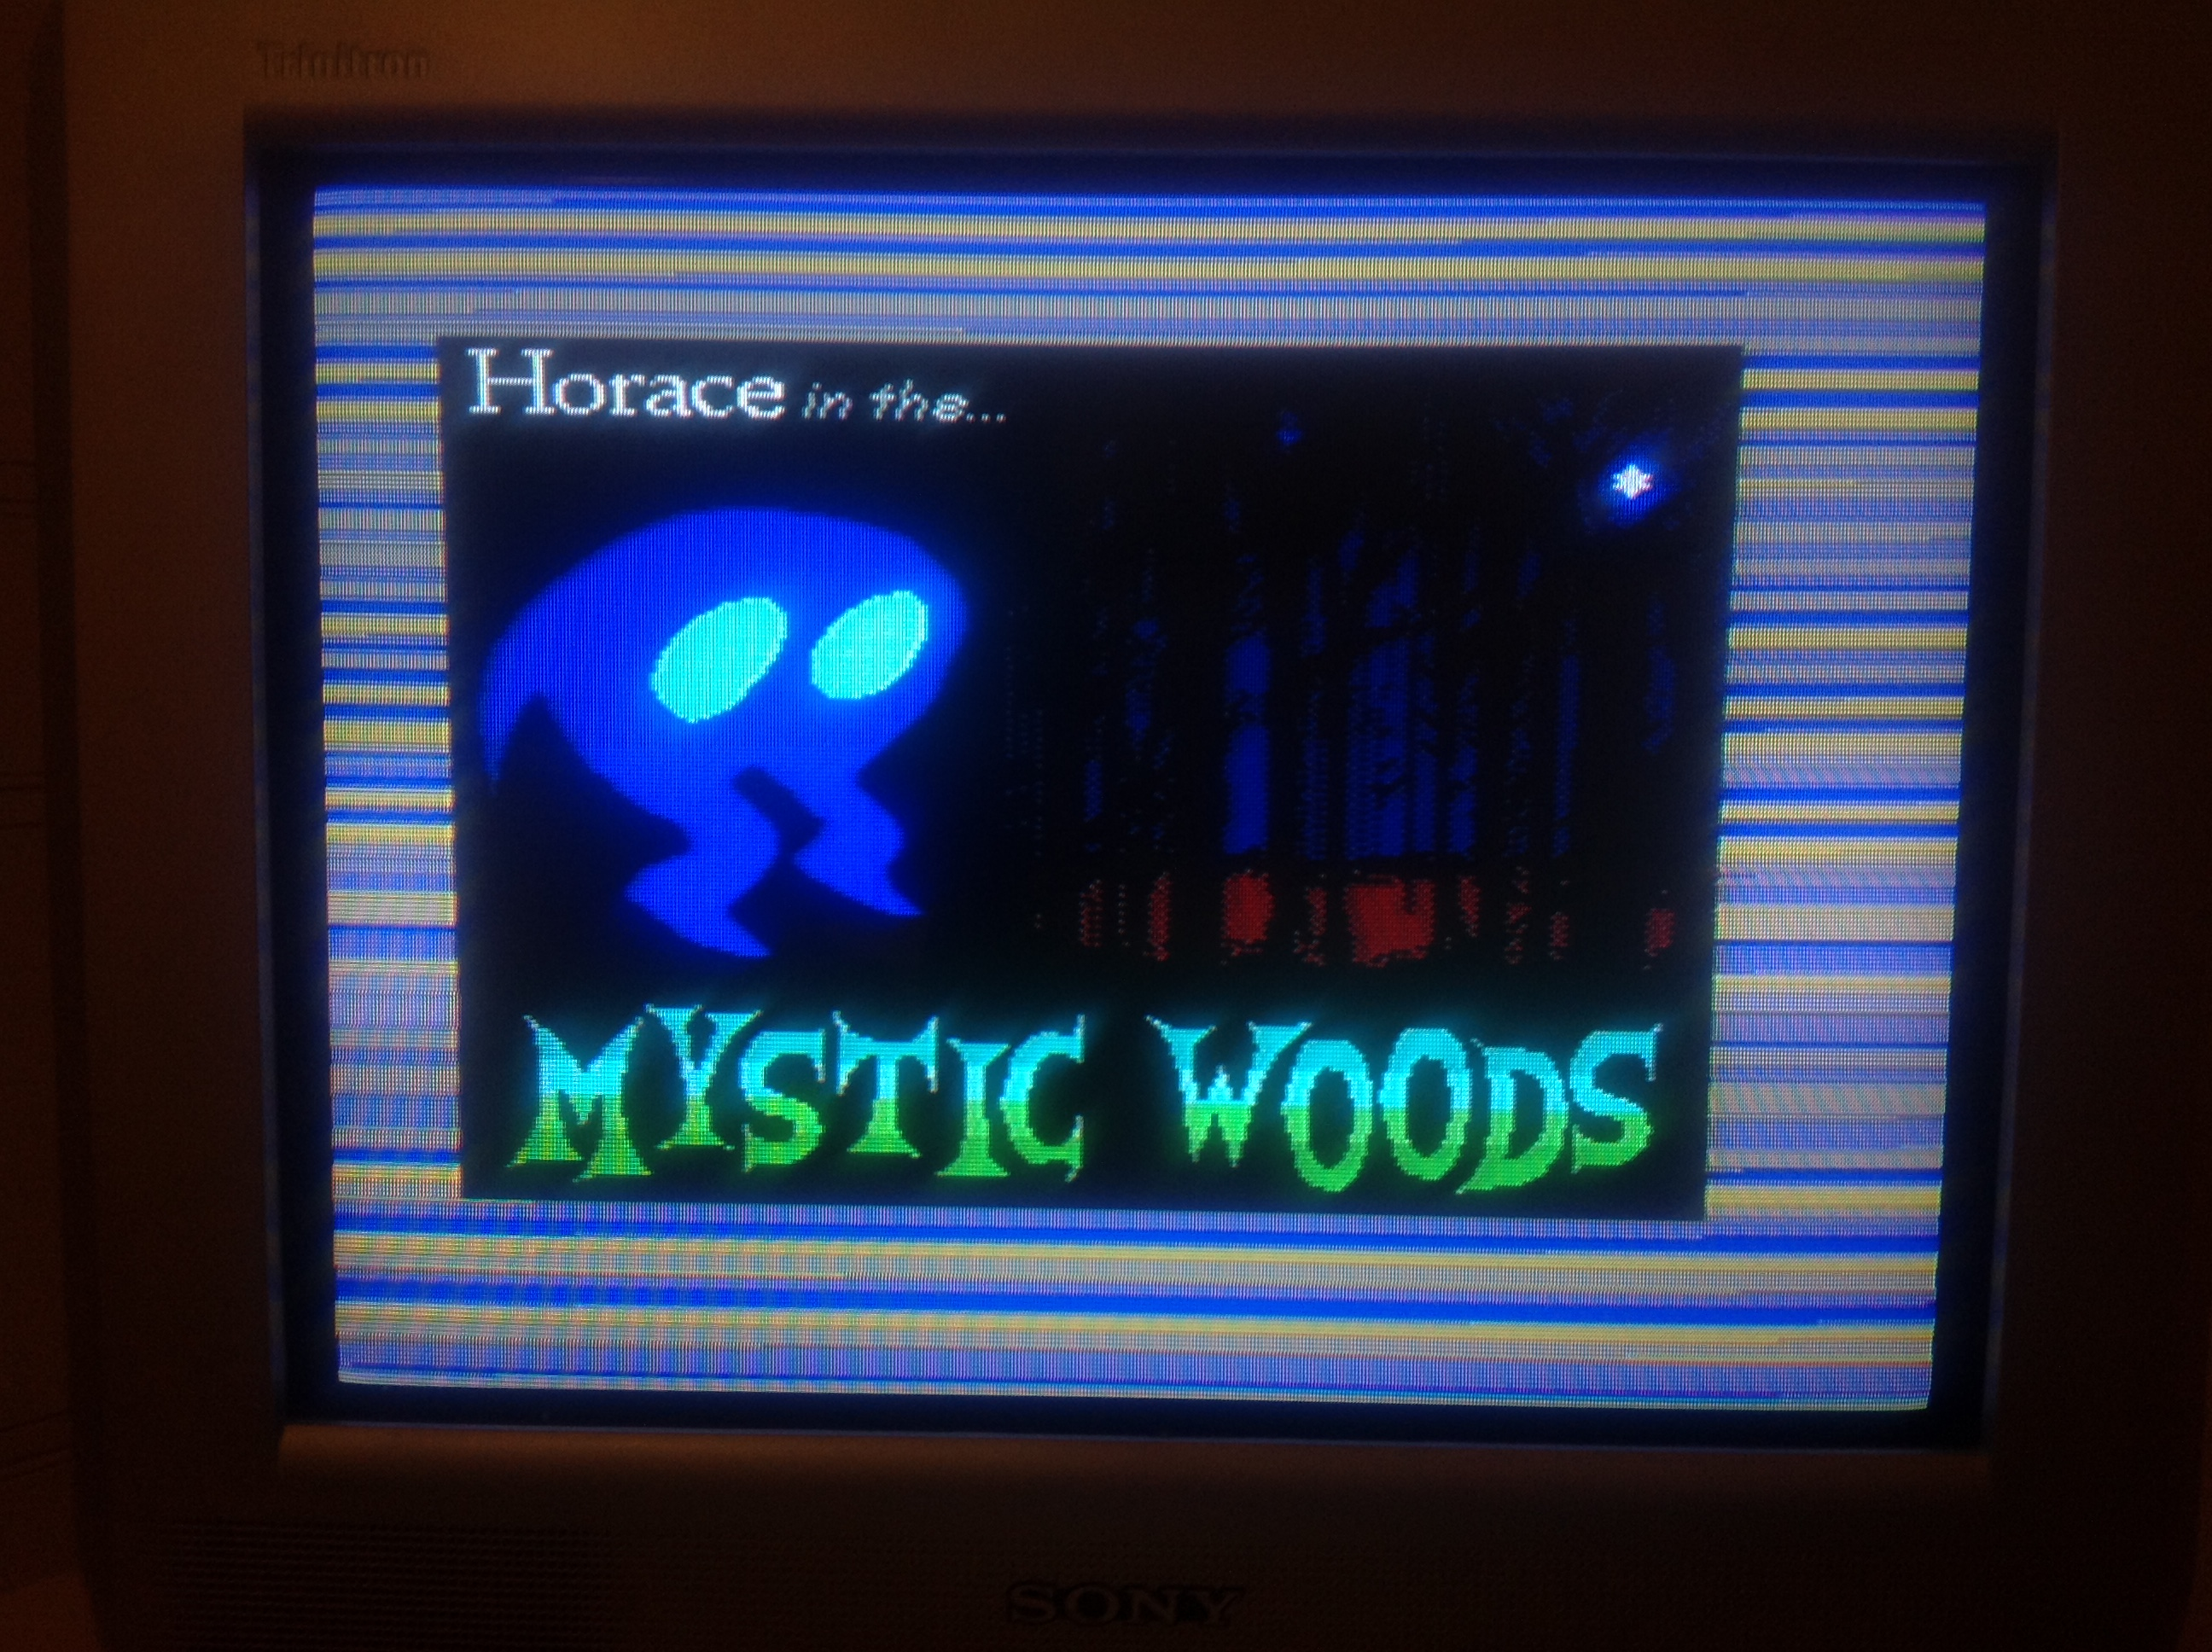 CoCoForest: Horace In The Mystic Woods [Normal] (ZX Spectrum) 3,328 points on 2016-01-17 13:49:00